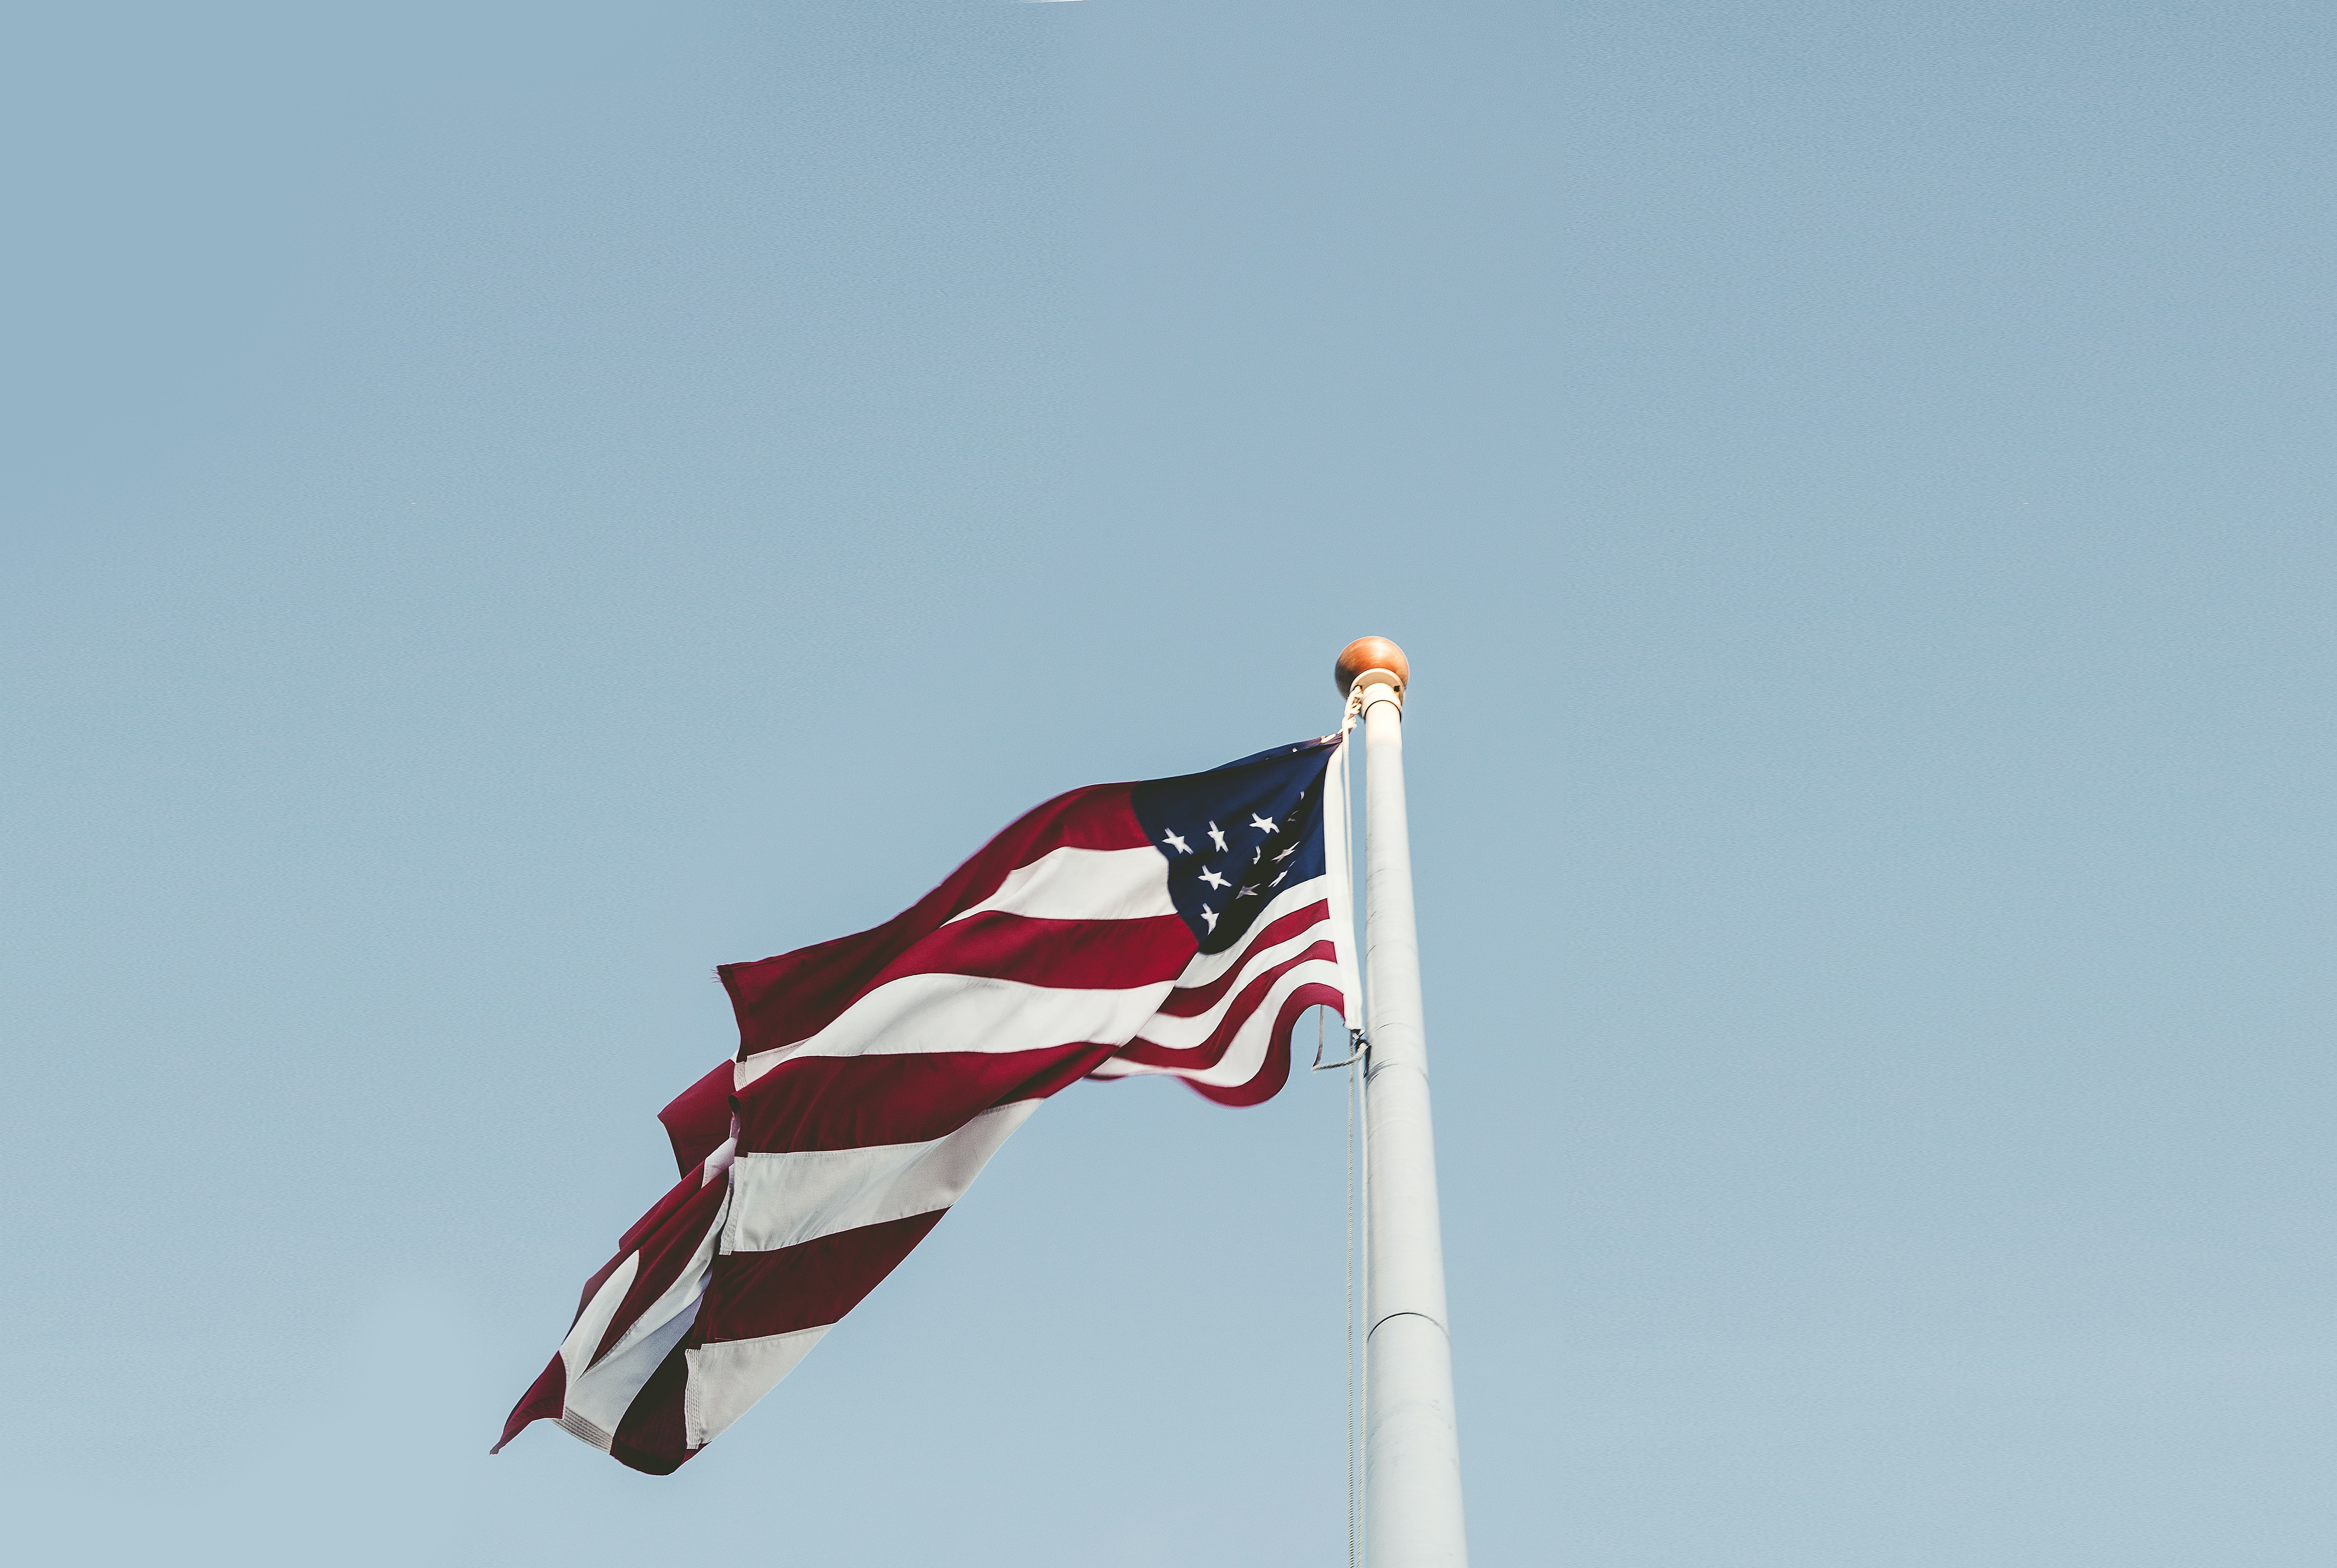 American flag flying in the wind atop a flagpole